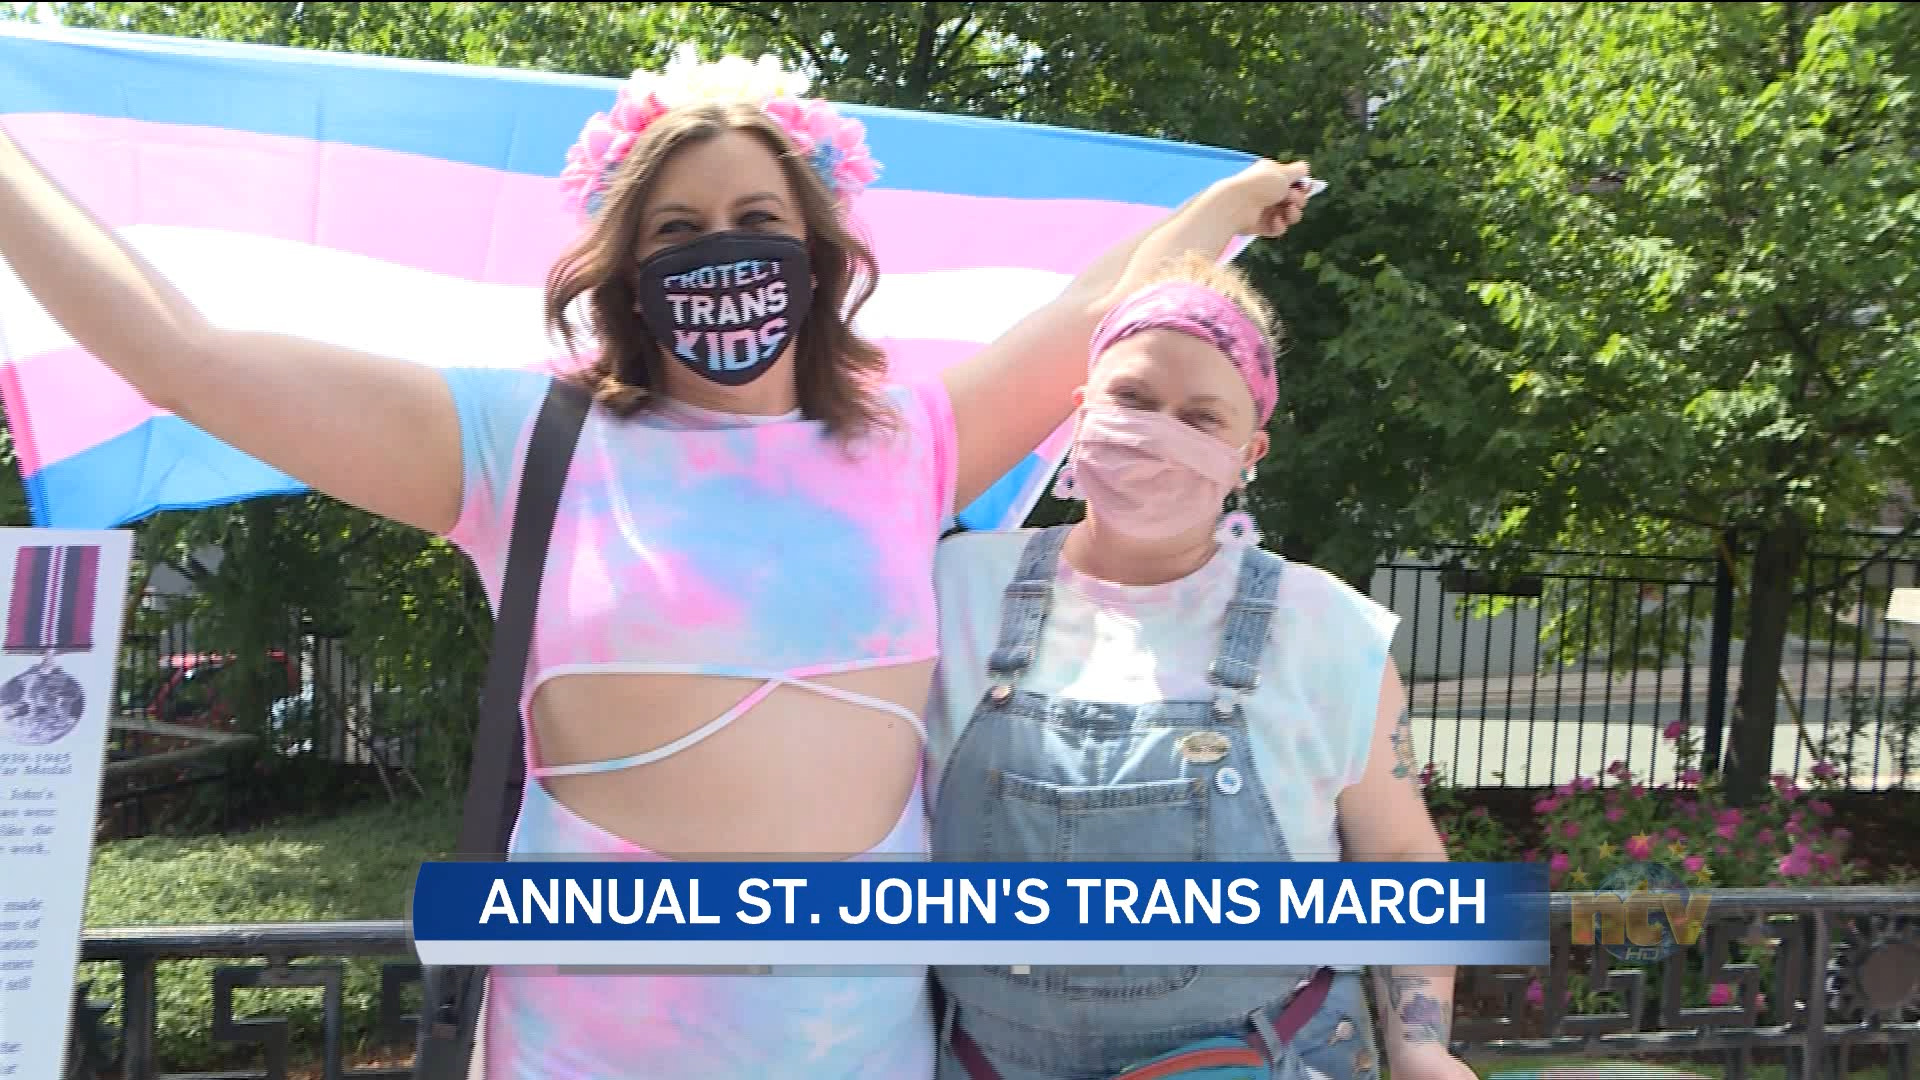 Annual Trans March takes place in downtown St. John's